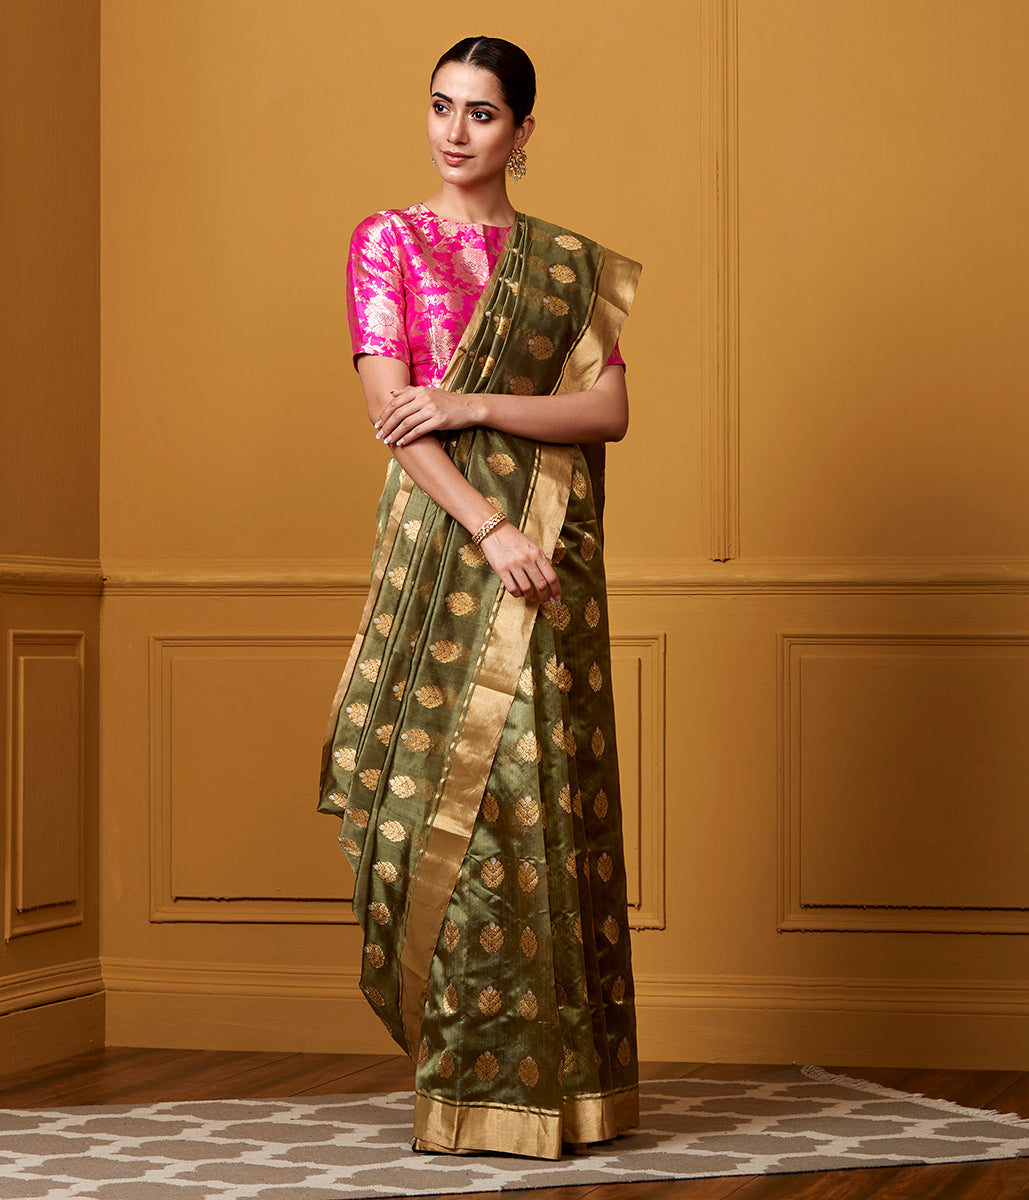 Handwoven Chanderi silk saree in green with all over gold zari booti with meenkari